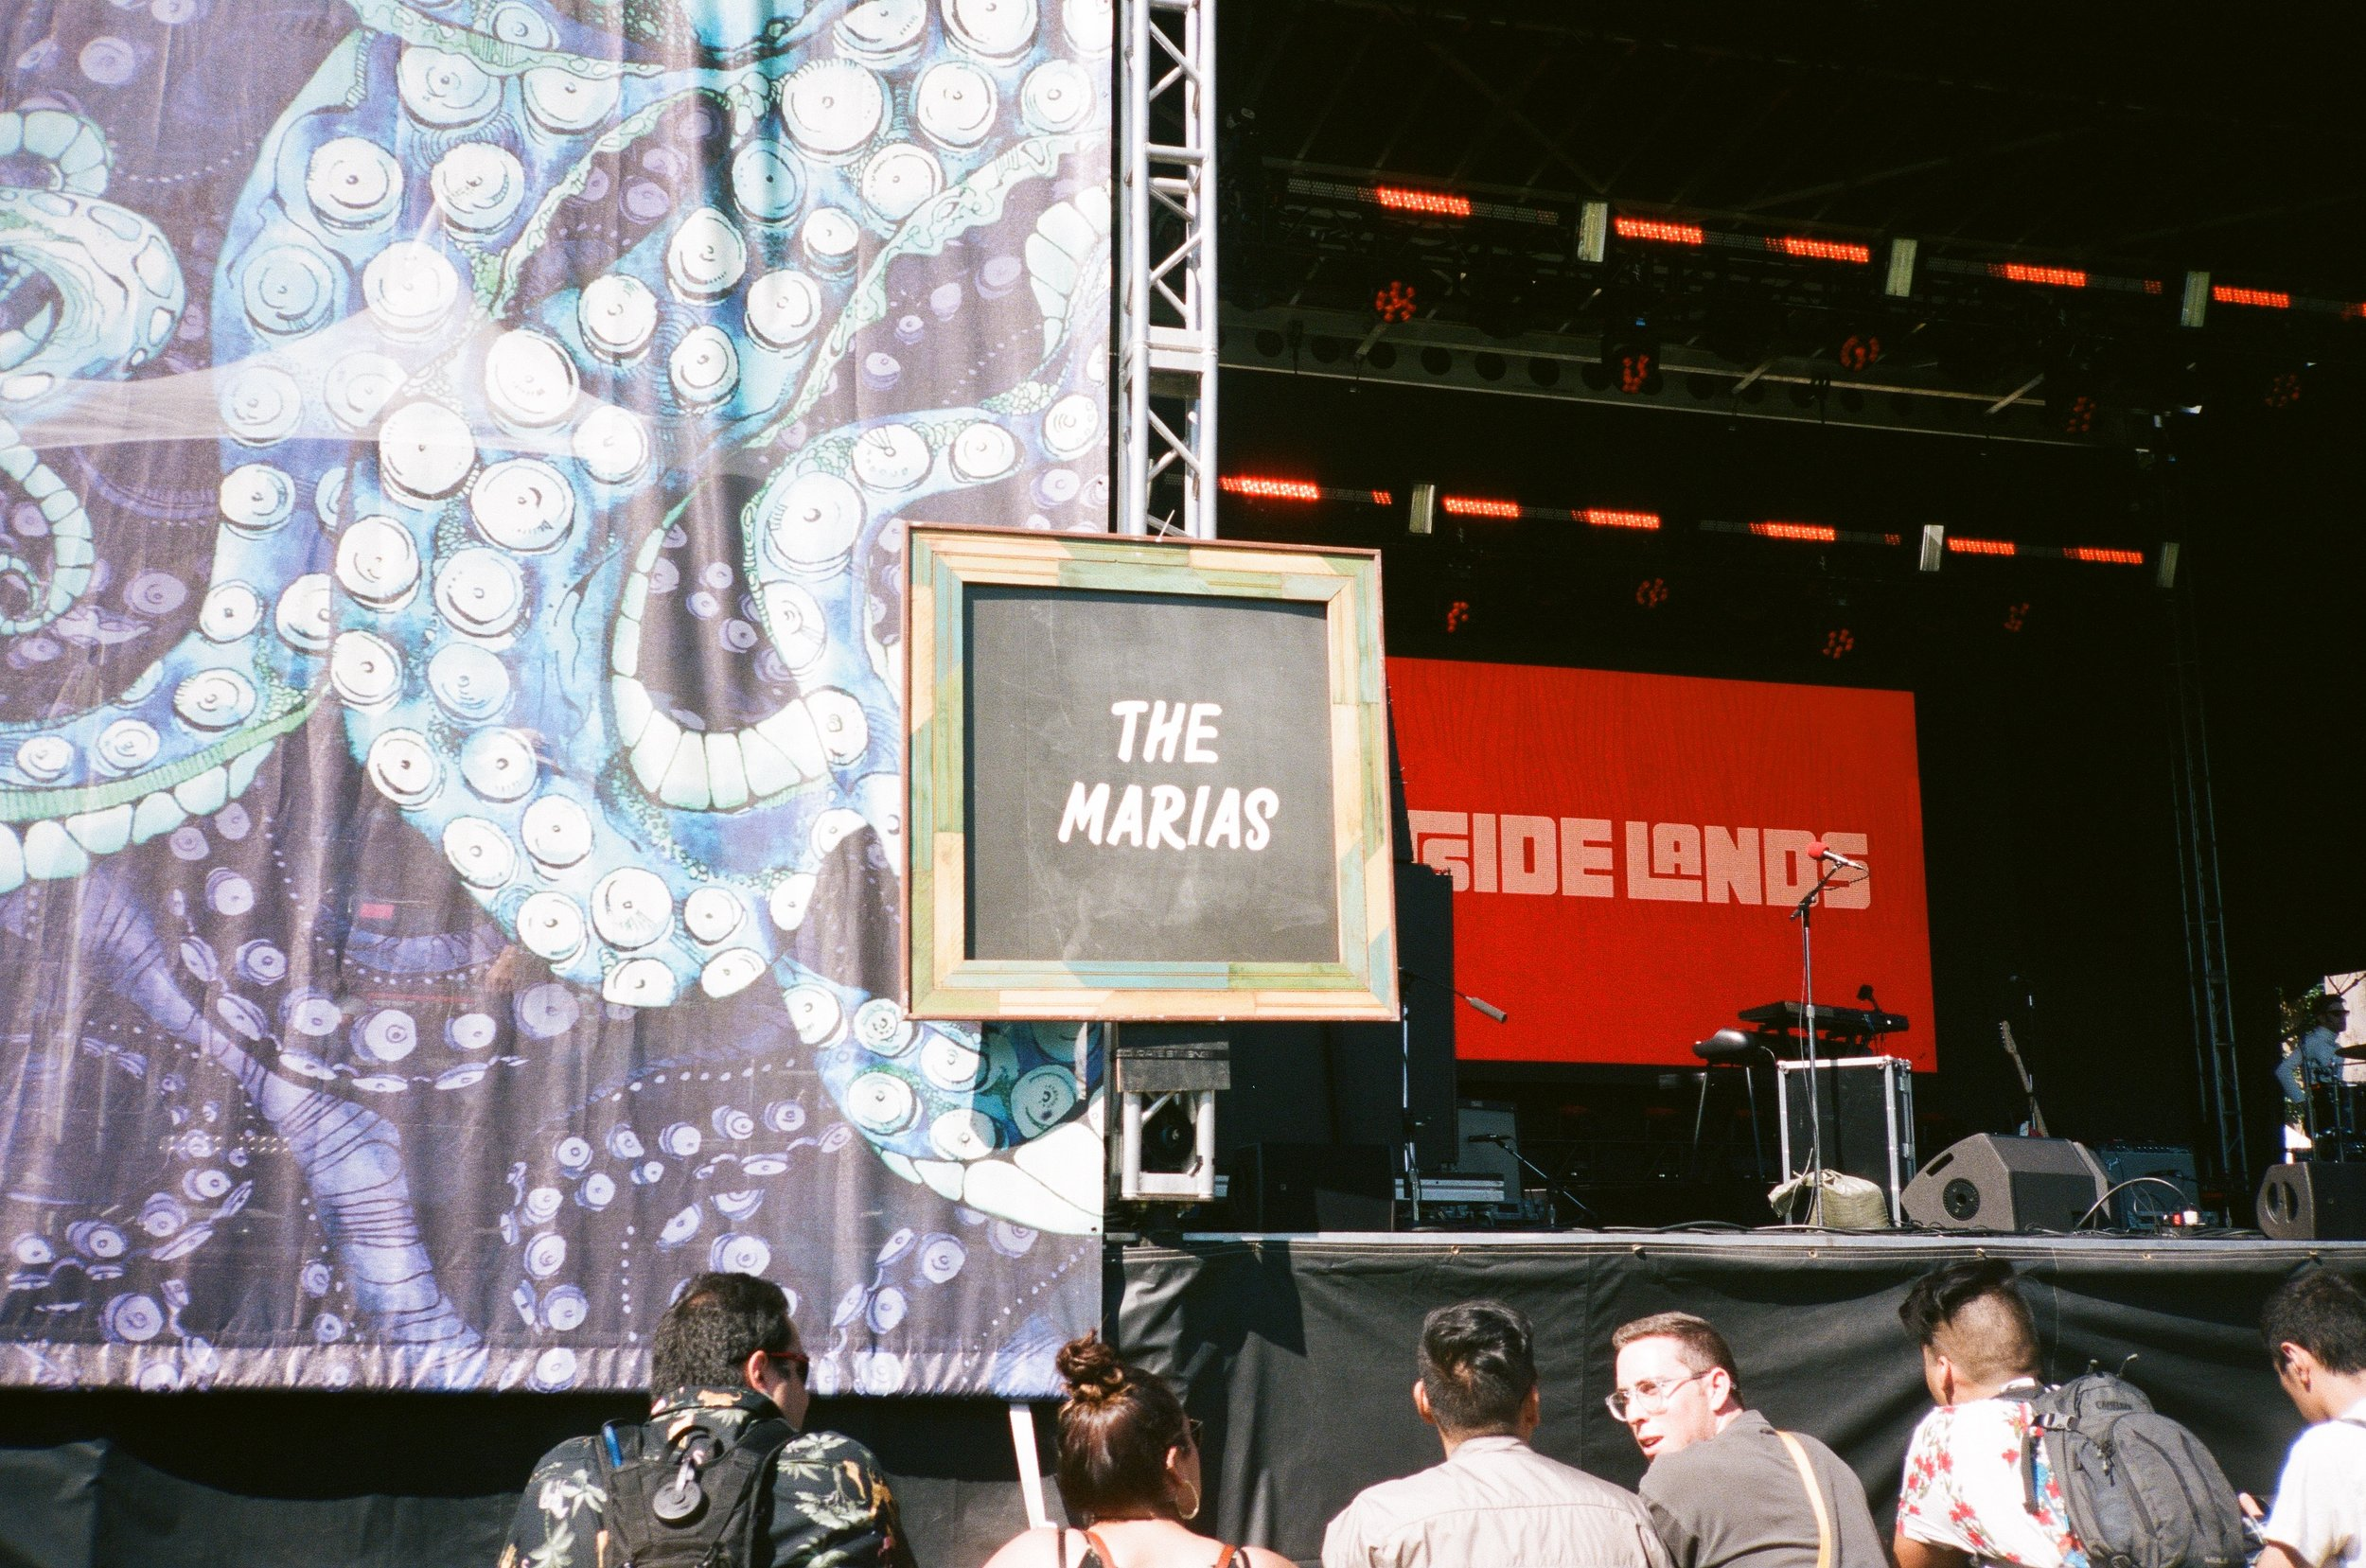 The-Marias-Outside-Lands-23.jpg